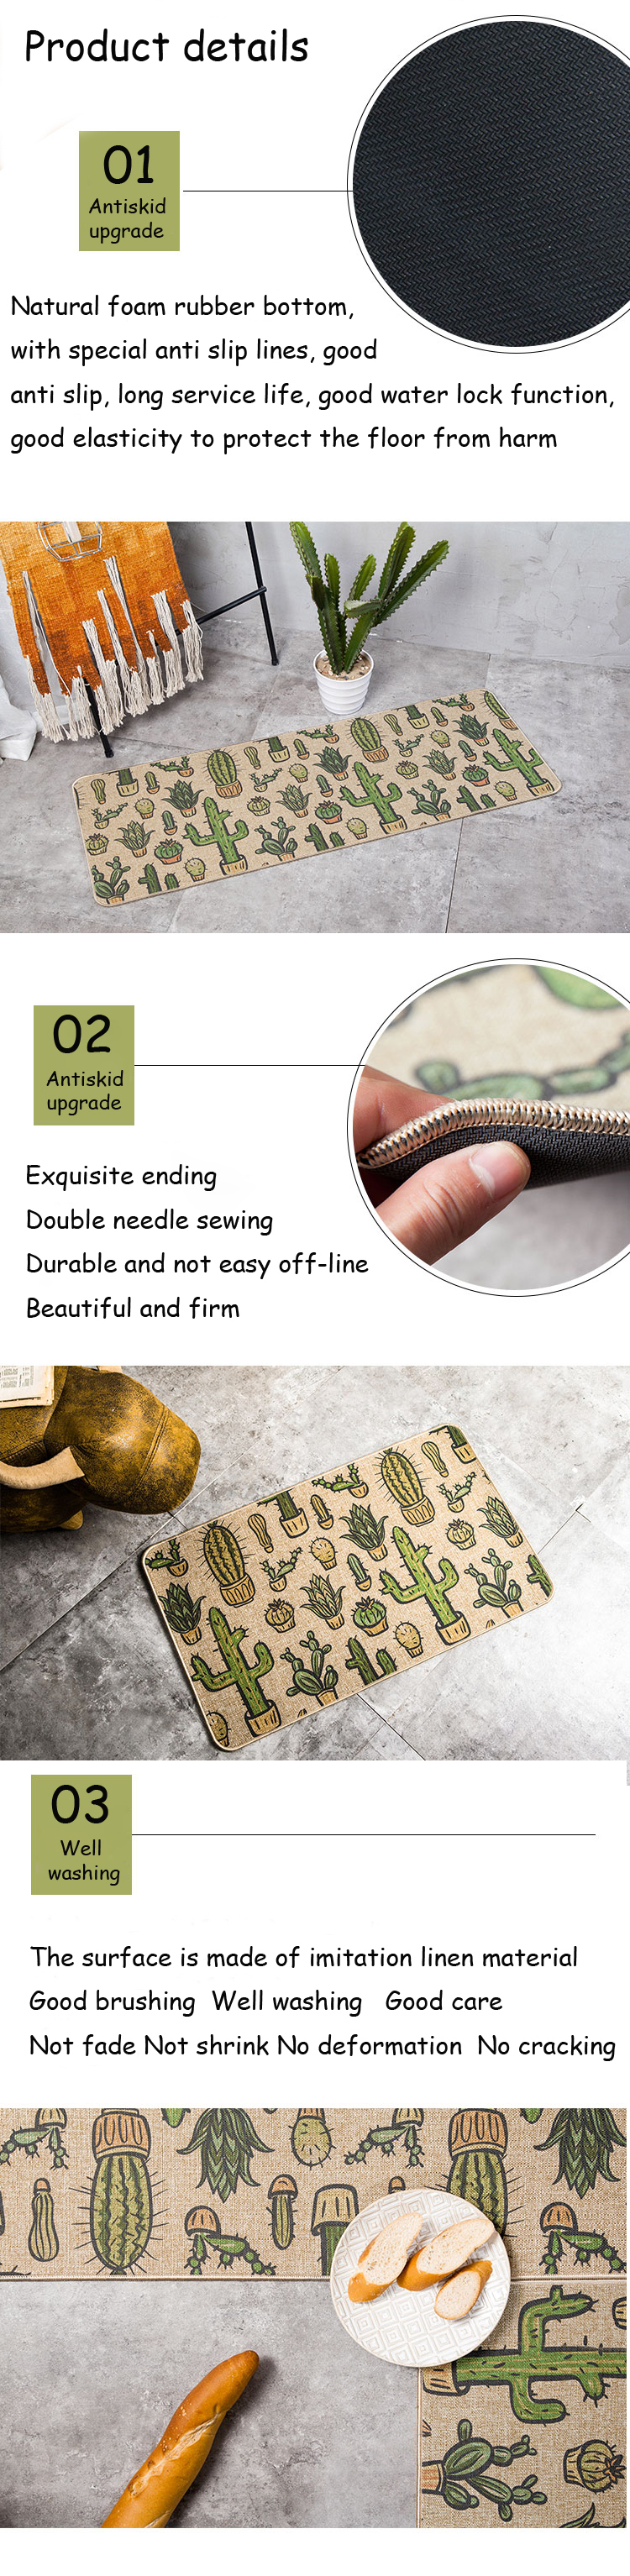 Natural Rubber Back Cactus Kitchen Rug Sets Mat Oil Proof Waterproof Anti  Pollution Non Skid Imitation Linen Cloth Design Carpet - us518 b1fd8b32e3